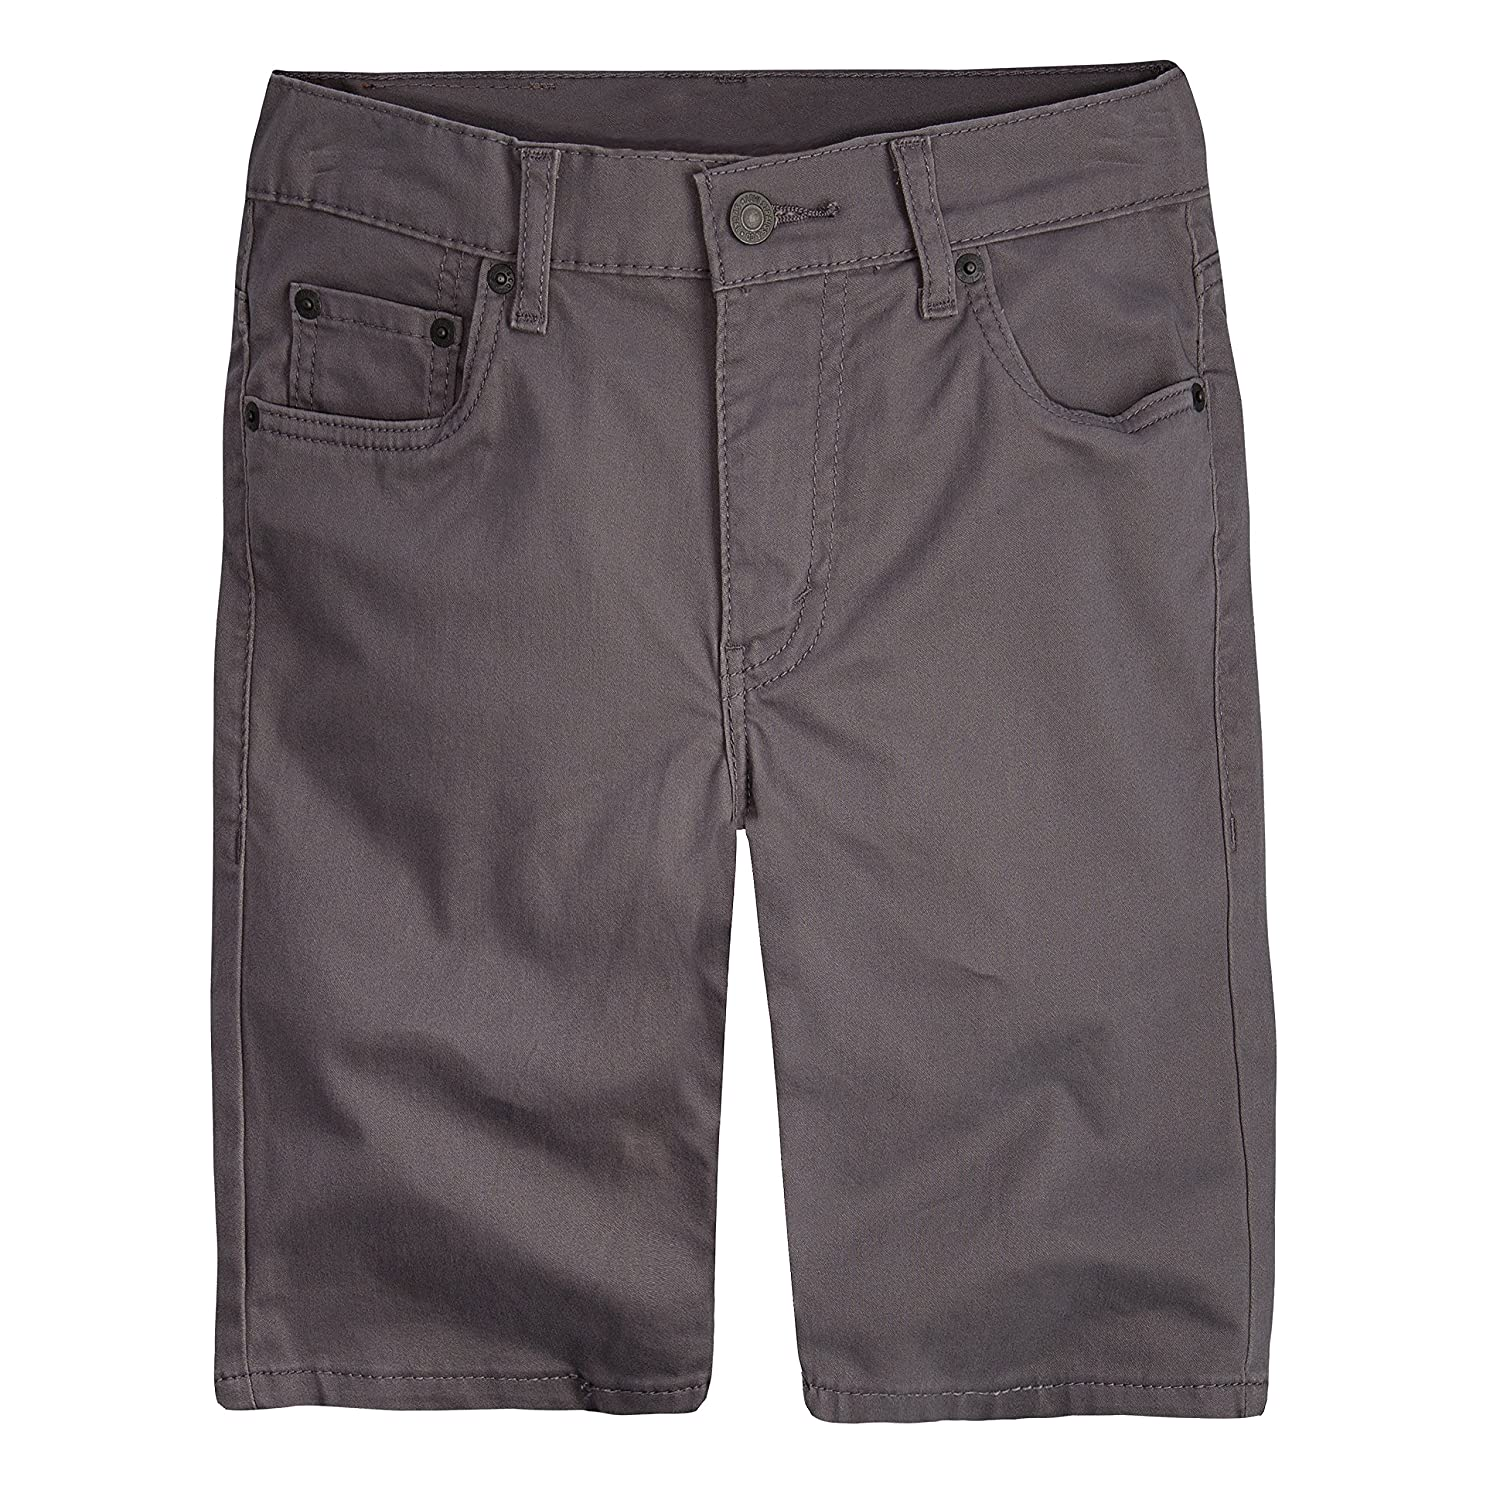 7cd420e3 511 slim fit shorts featuring five-pocket styling with signature arcuate  stitching on rear pocket. Brushed stretch fabric feels good against skin